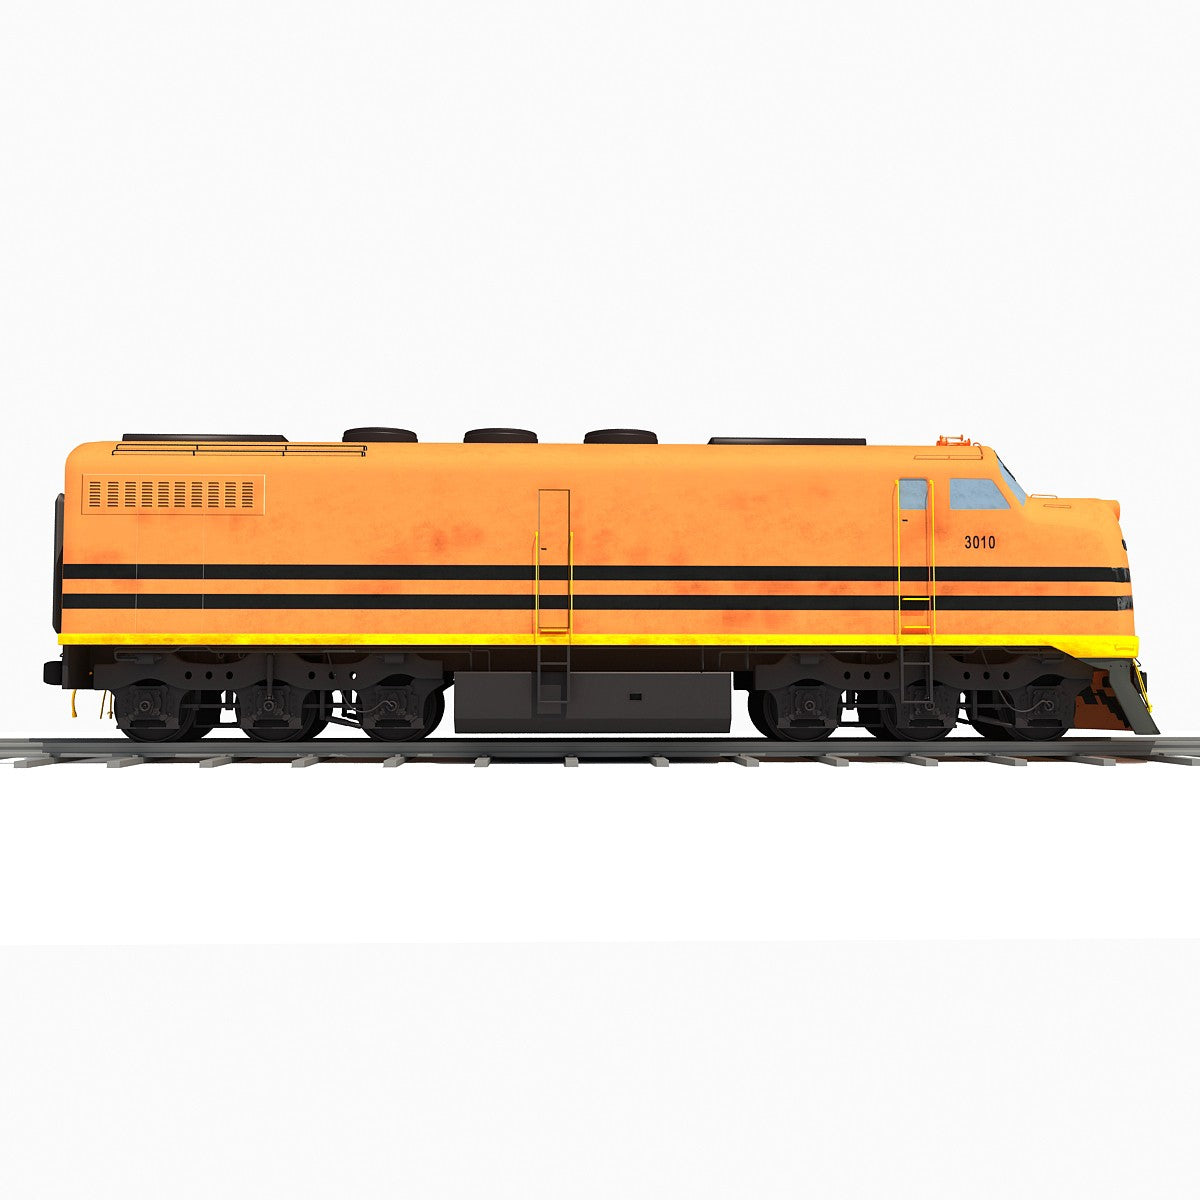 Locomotive Train 3D Model